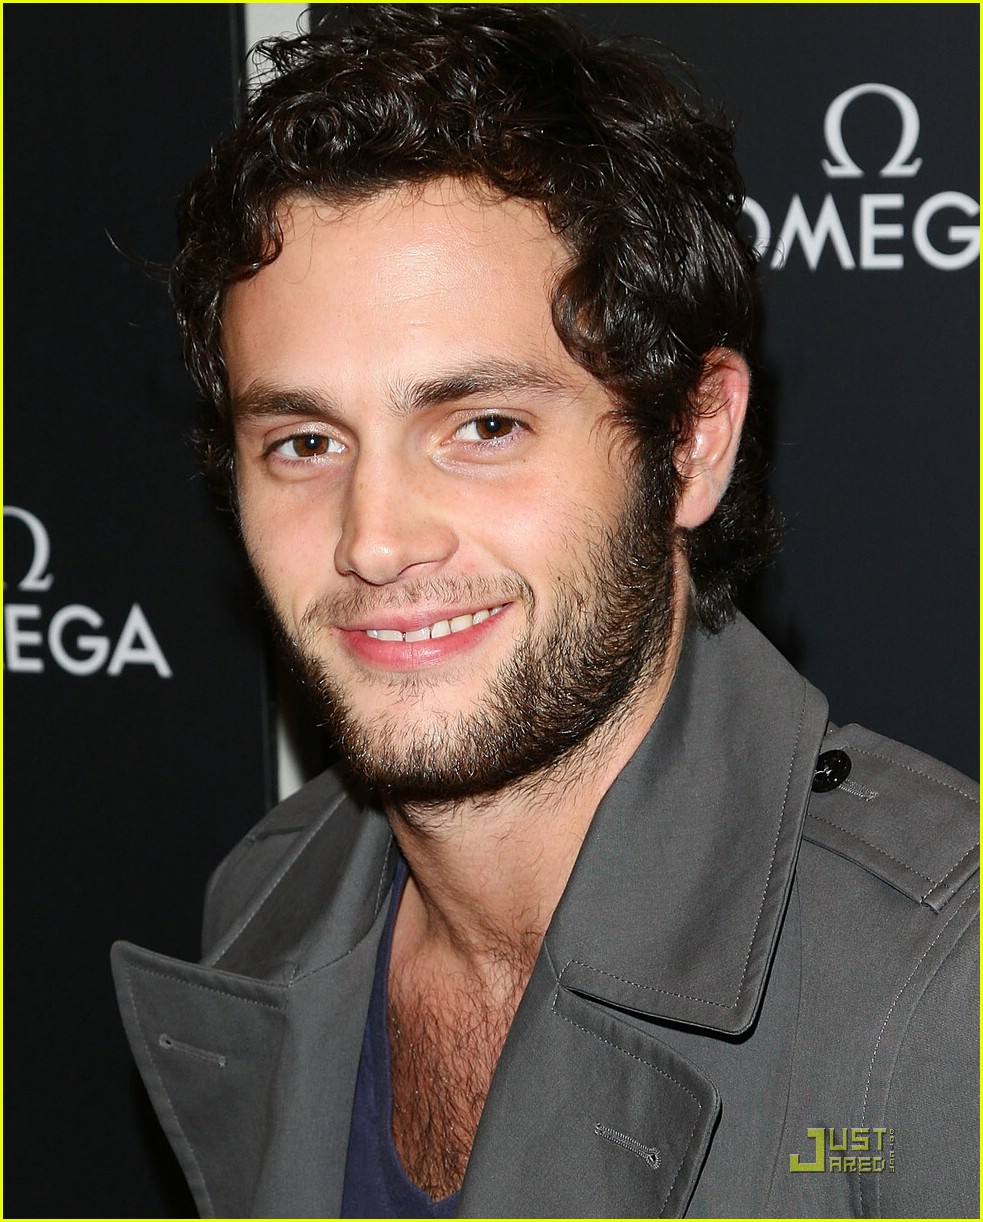 penn badgley and zoe kravitzpenn badgley and blake lively, penn badgley instagram, penn badgley vk, penn badgley height, penn badgley 2017, penn badgley dating, penn badgley and zoe kravitz, penn badgley gif, penn badgley wife, penn badgley gossip girl, penn badgley once i was, penn badgley insta, penn badgley gallery, penn badgley domino, penn badgley fansite, penn badgley girlfriend, penn badgley who dated, penn badgley married, penn badgley 2016, penn badgley tumblr